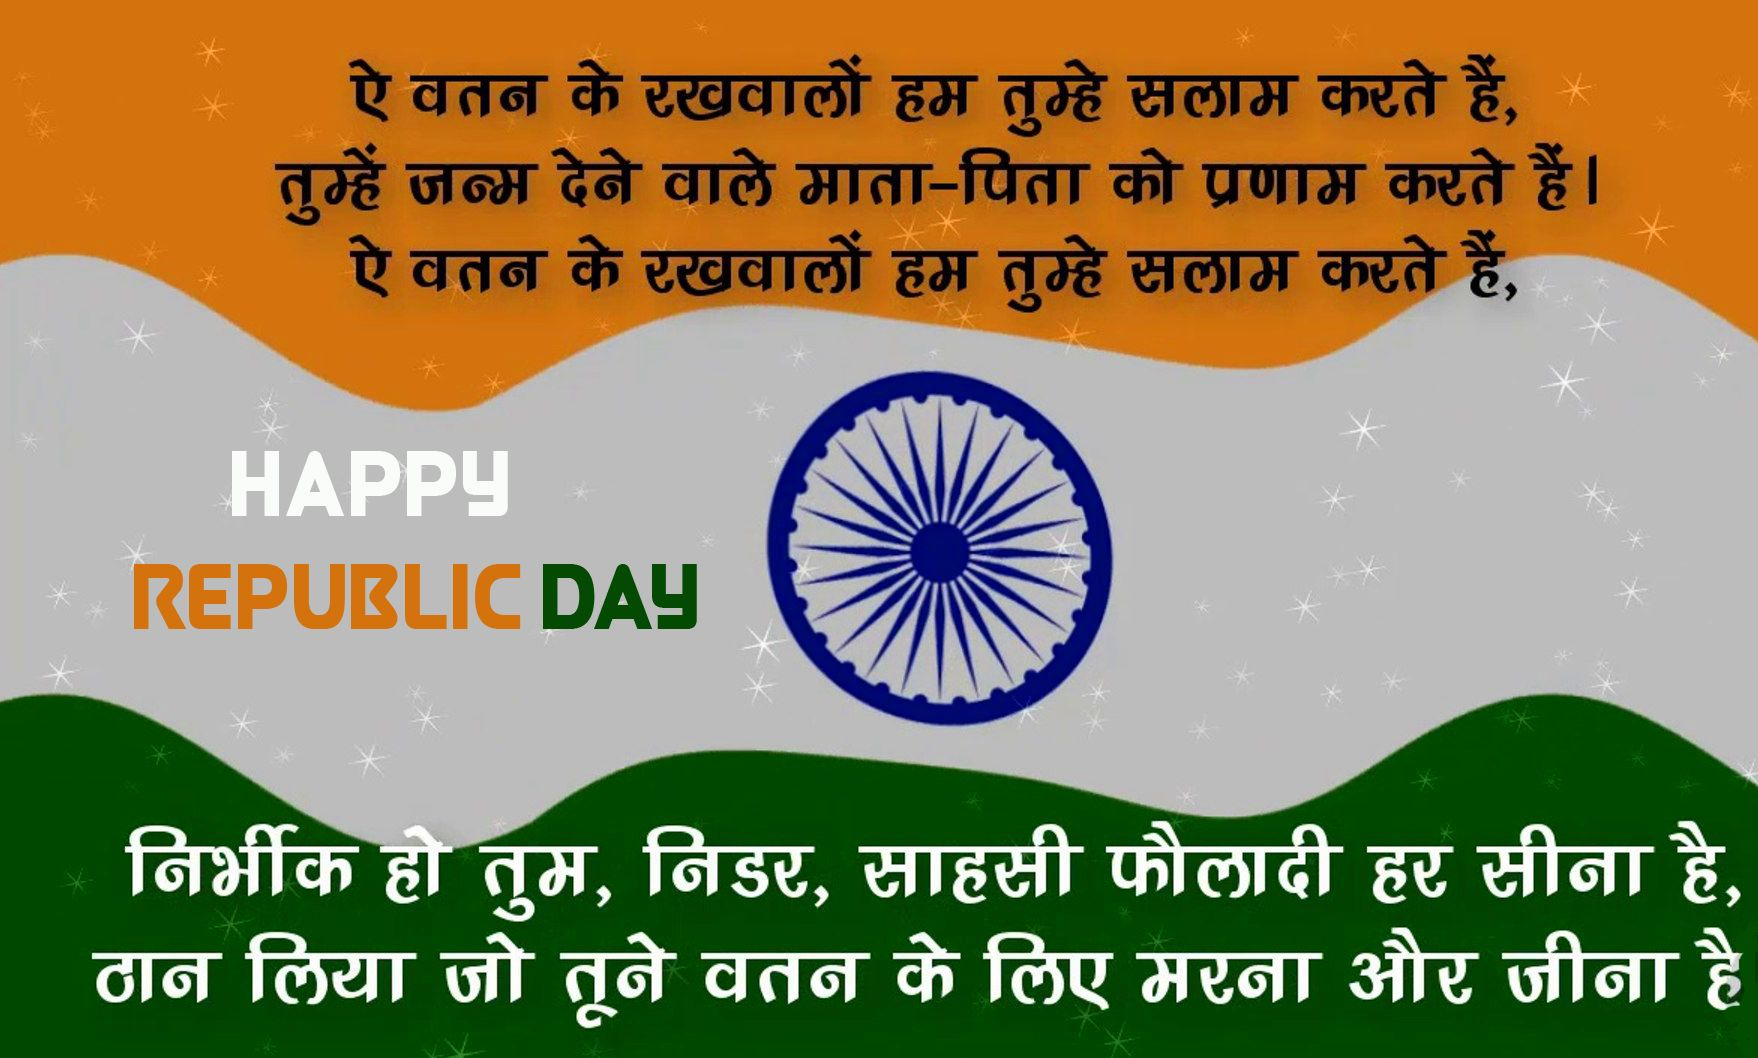 Jai Hind Hindi Quote With Happy Republic Day Wish Republic Day Hindi Quotes Day Wishes